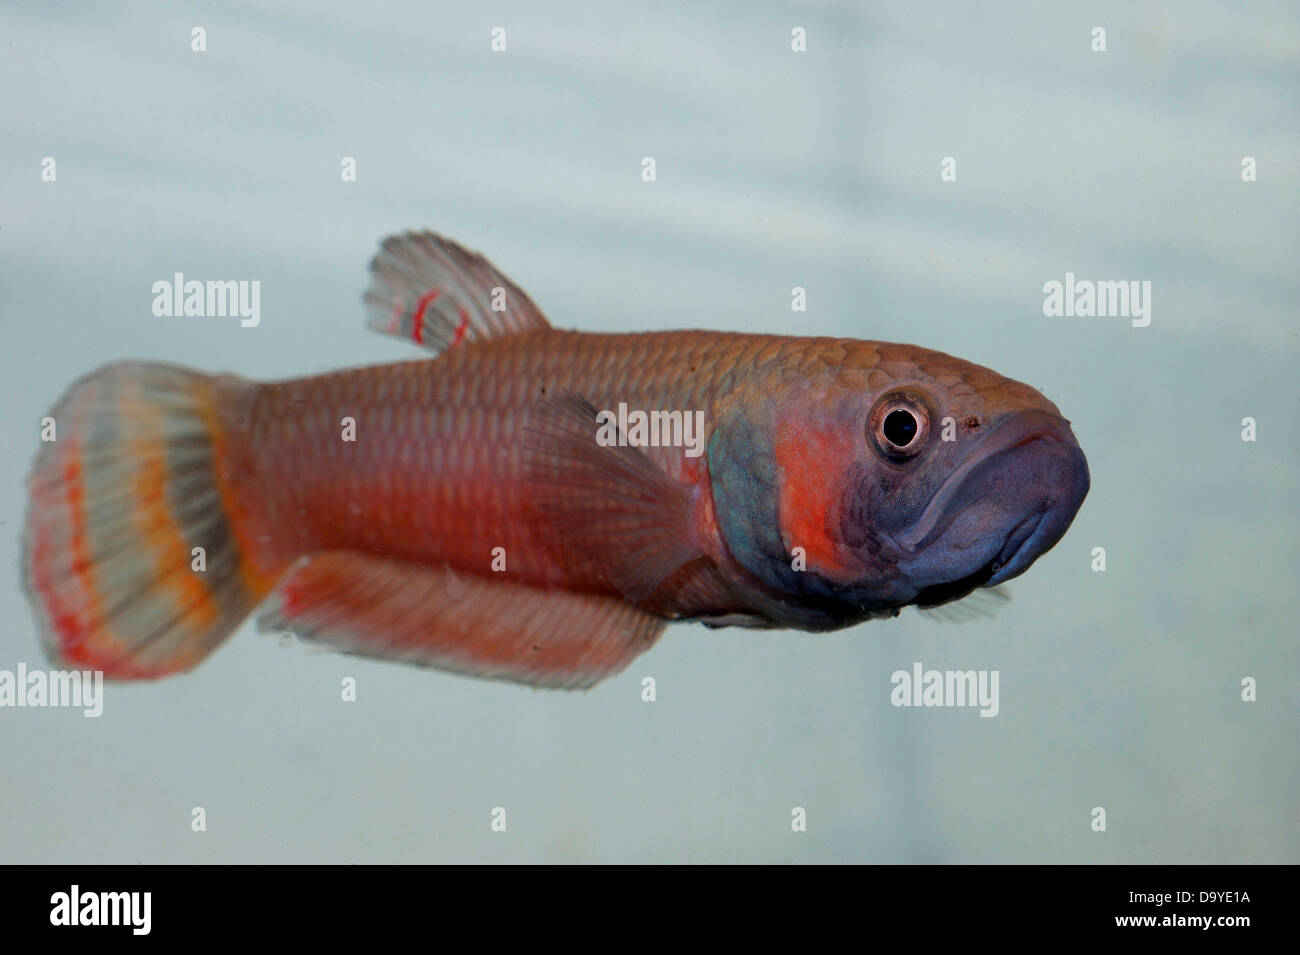 Freswater Fish Stock Photos & Freswater Fish Stock Images - Alamy